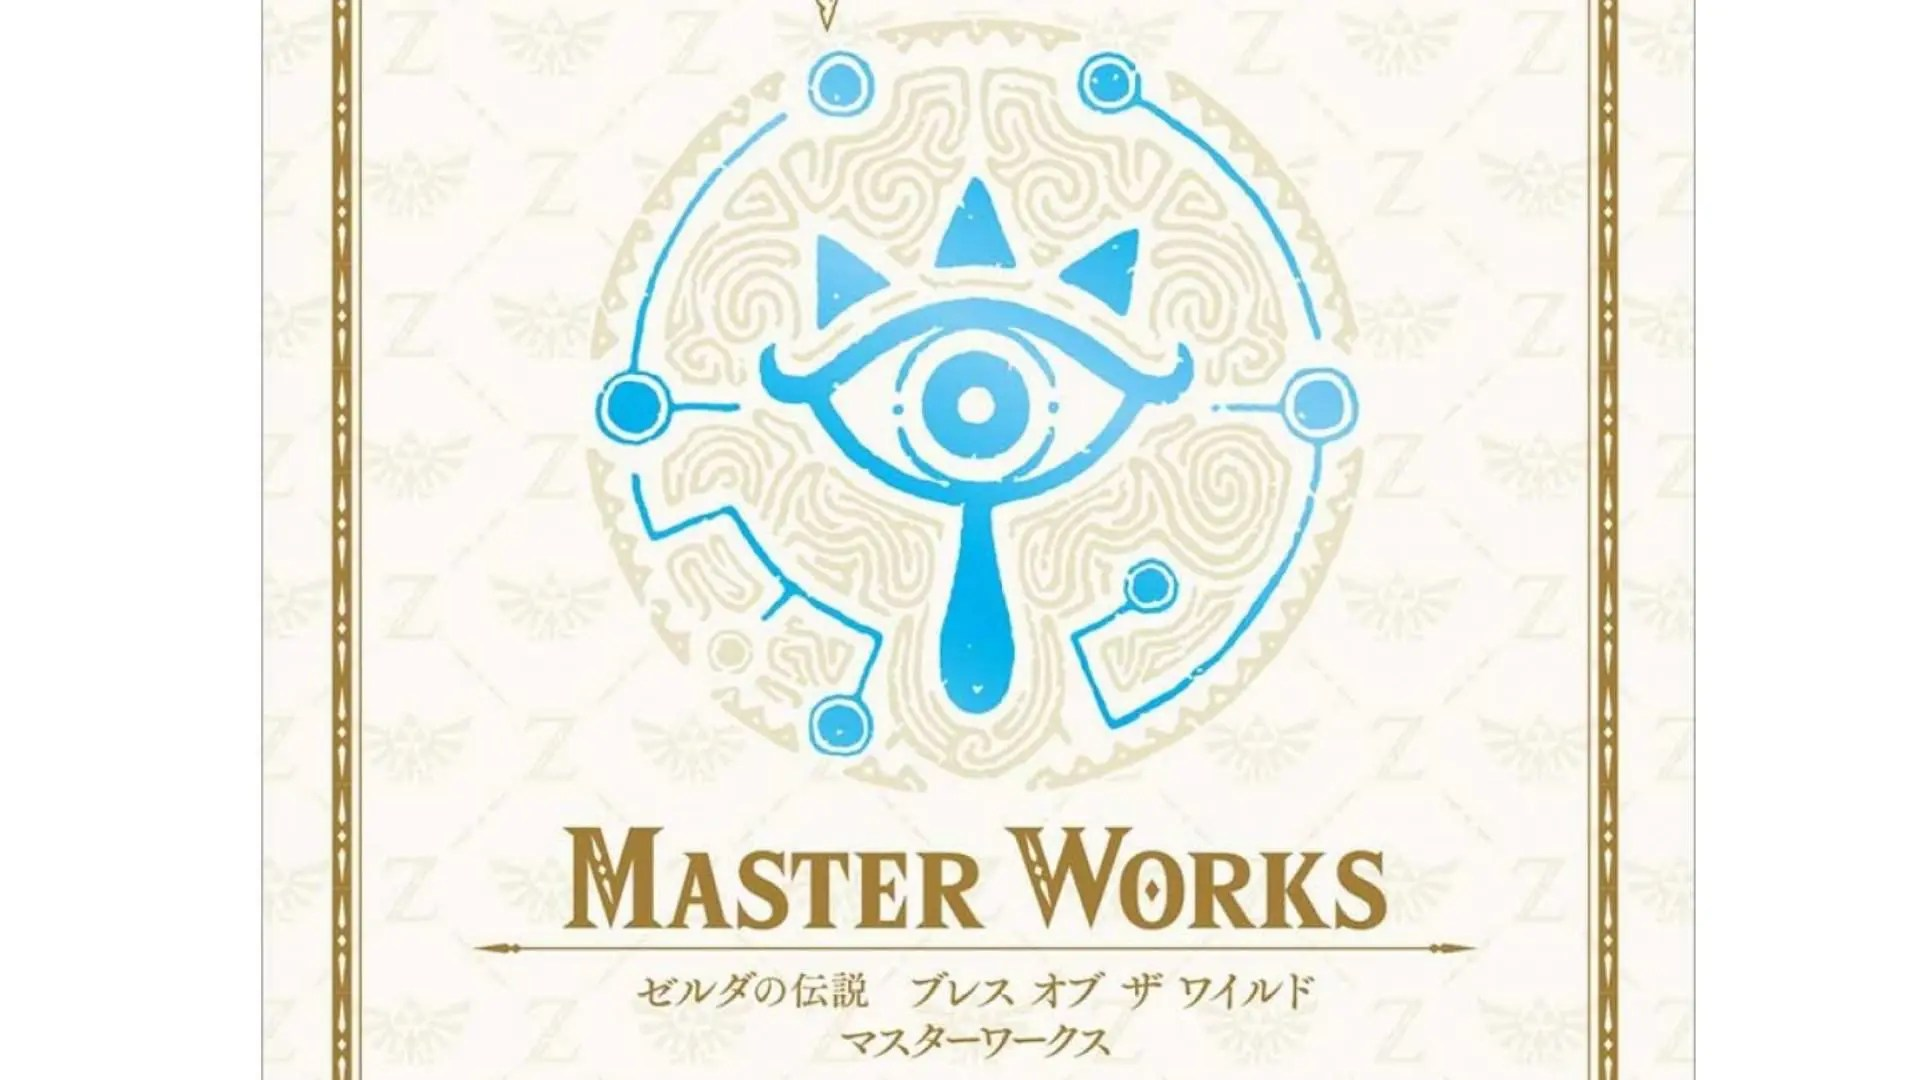 Champion Libro El Libro Master Works De Zelda Breath Of The Wild Llegará